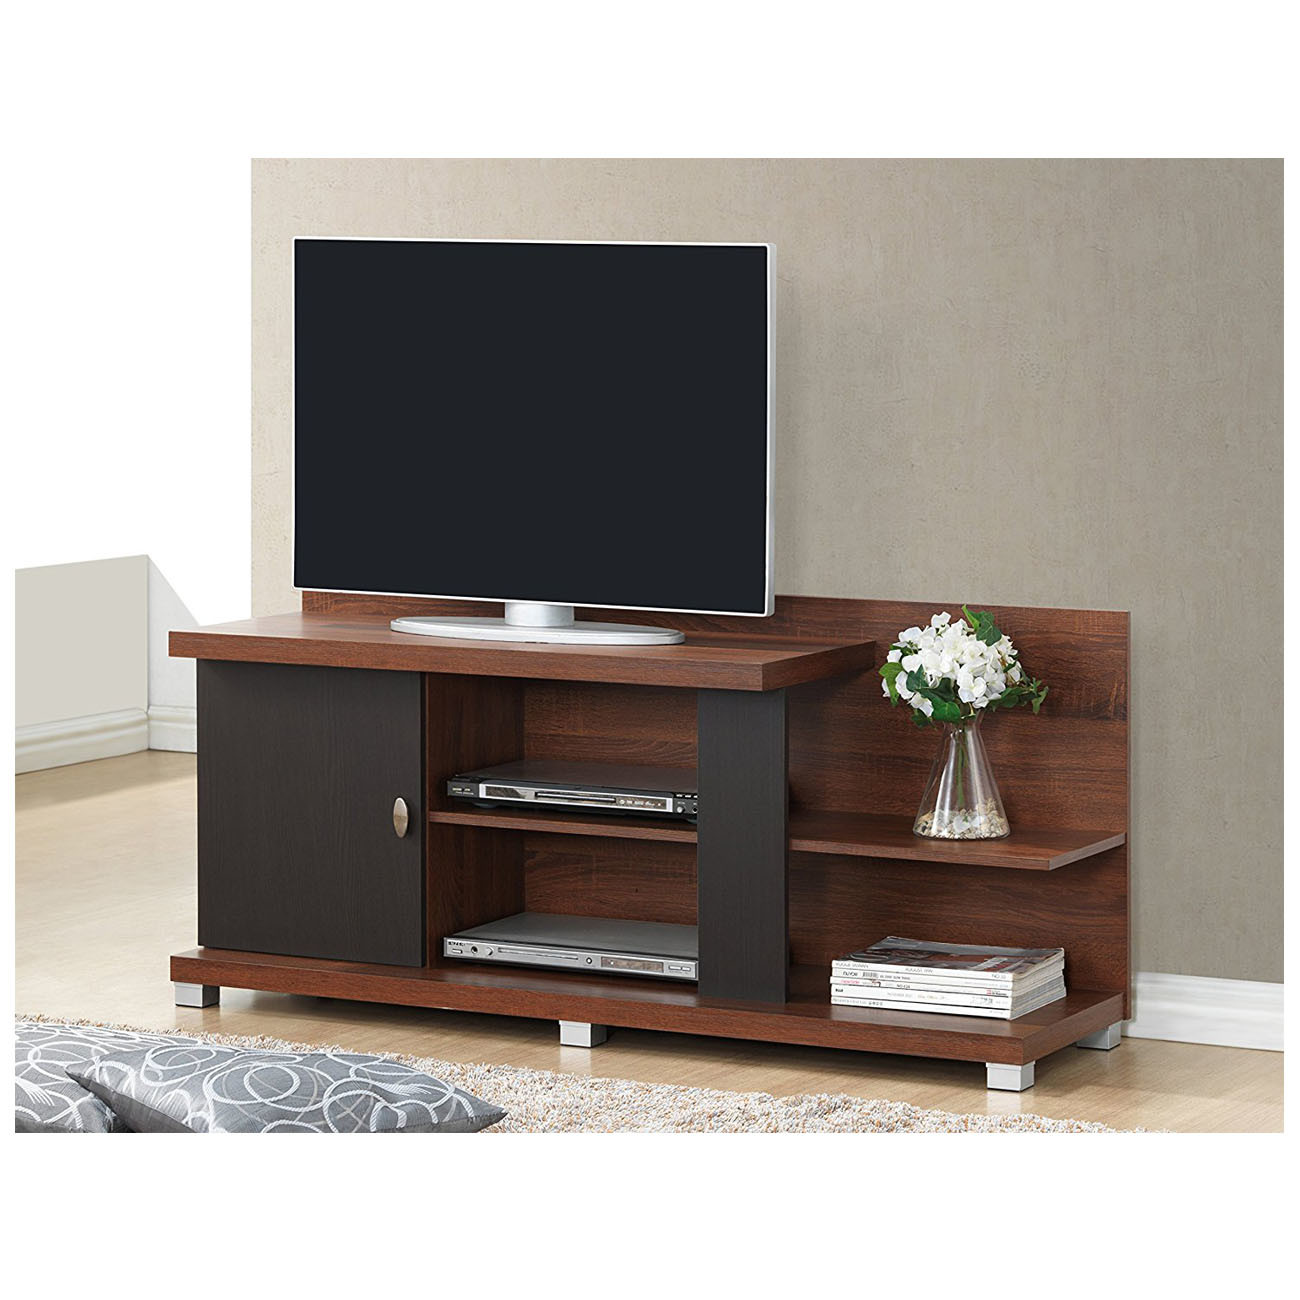 China Simple Tv Stand Parts Furniture Wood Tv Cabinet China Tv